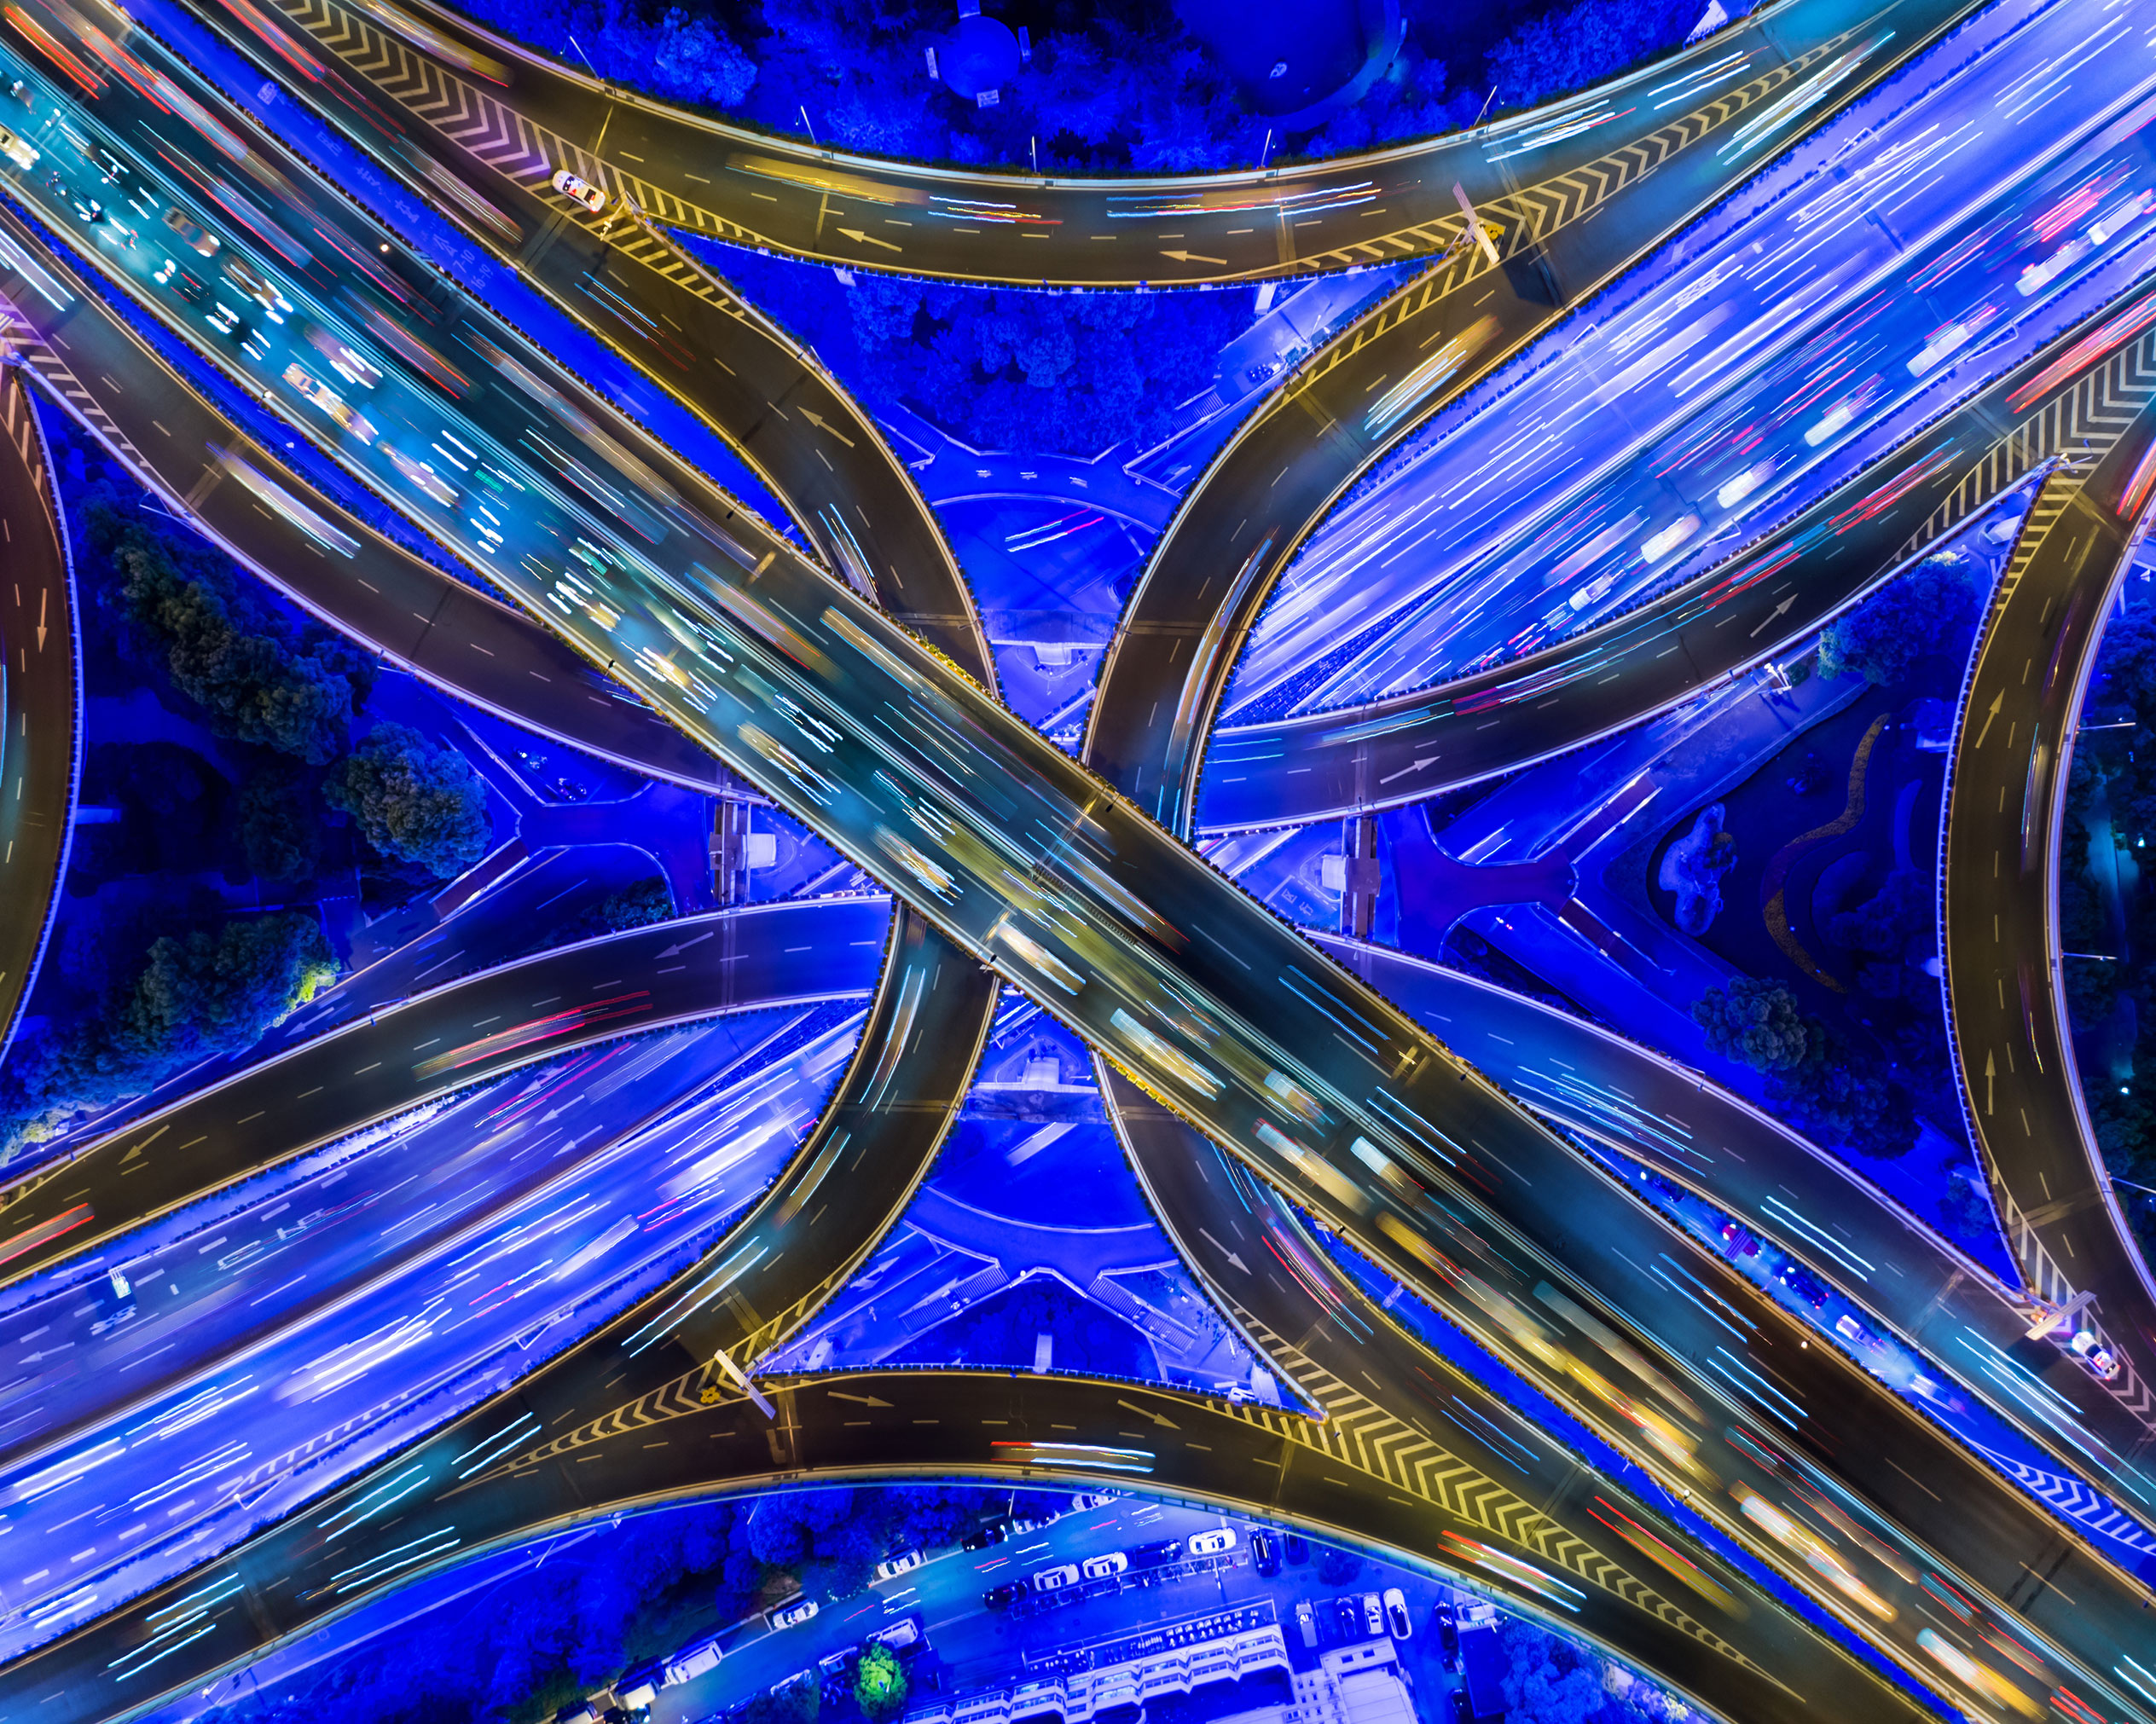 Traffic flows - aerial view of a freeway network